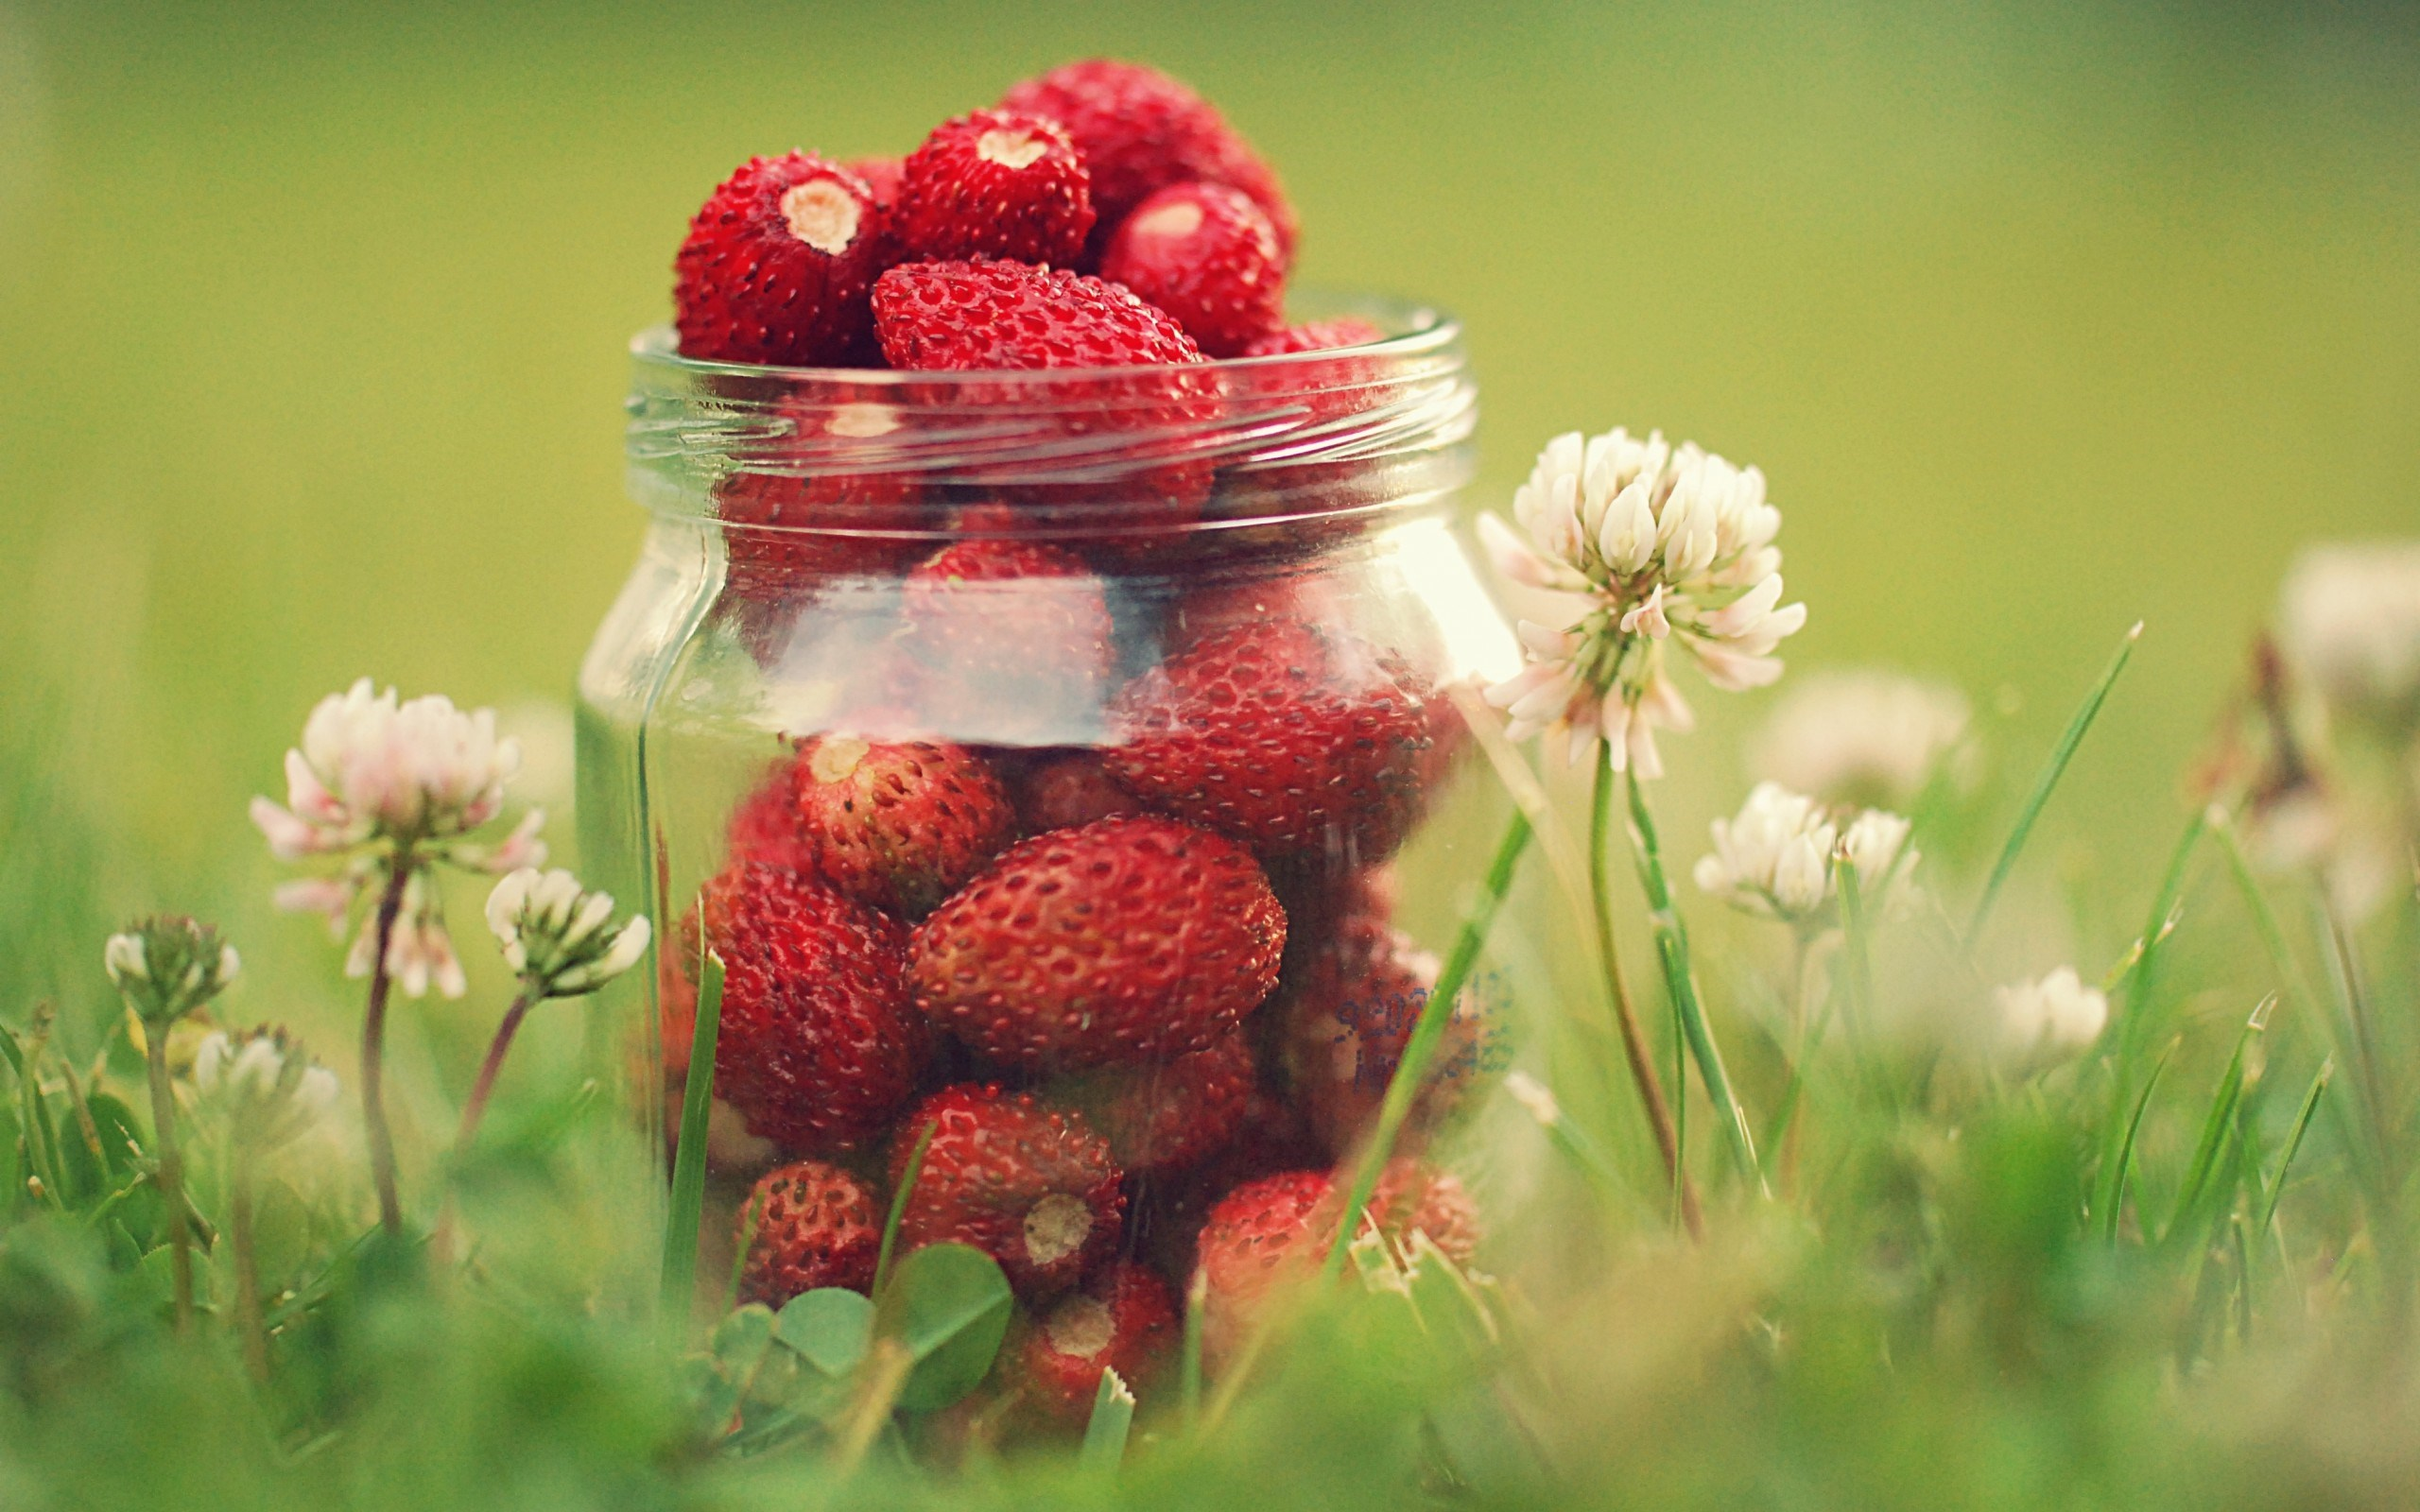 Strawberries Berries Jar Grass Nature